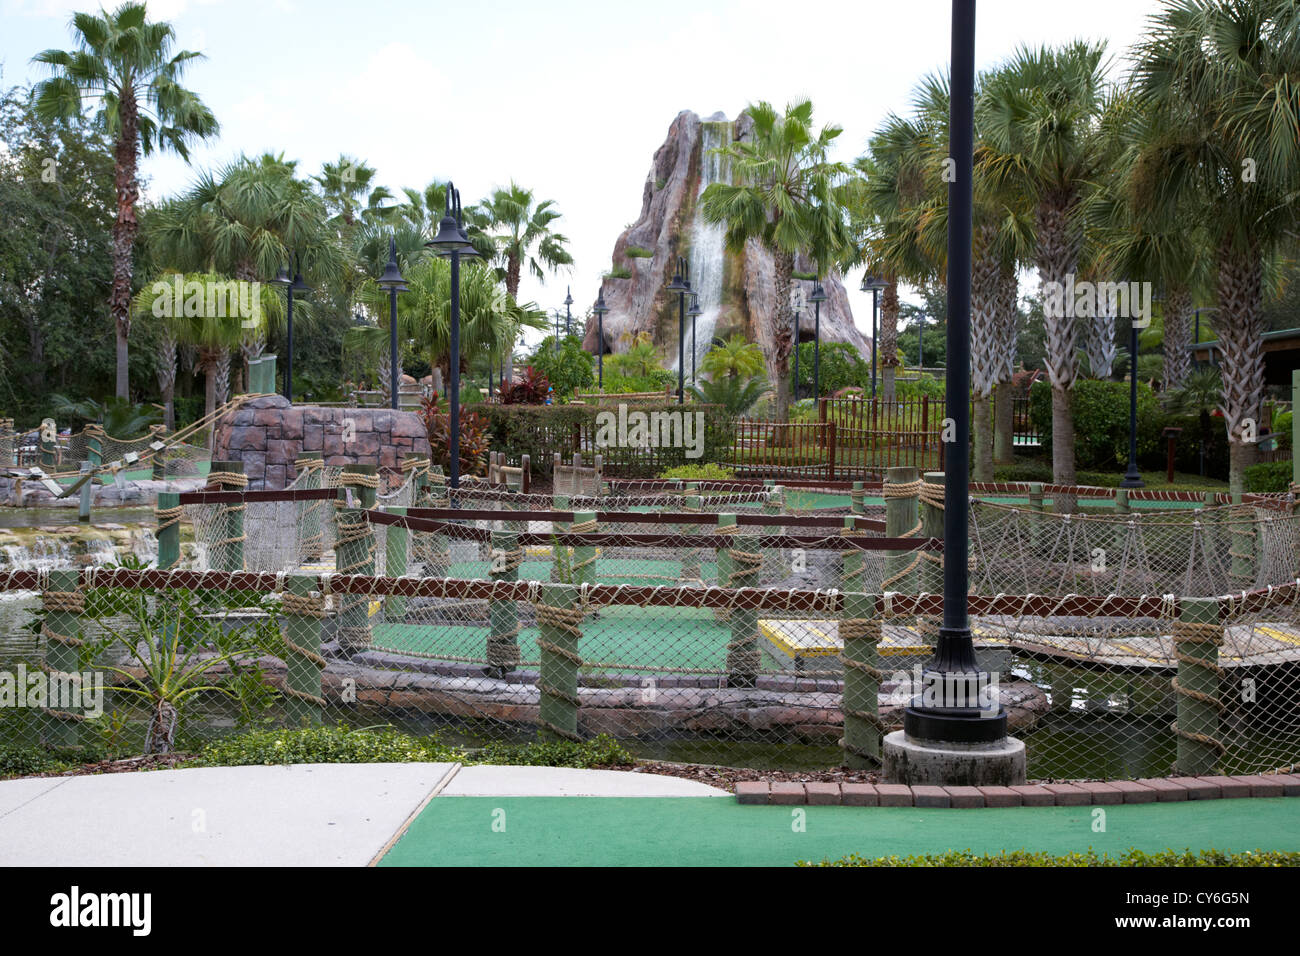 crazy golf course orlando florida usa - Stock Image